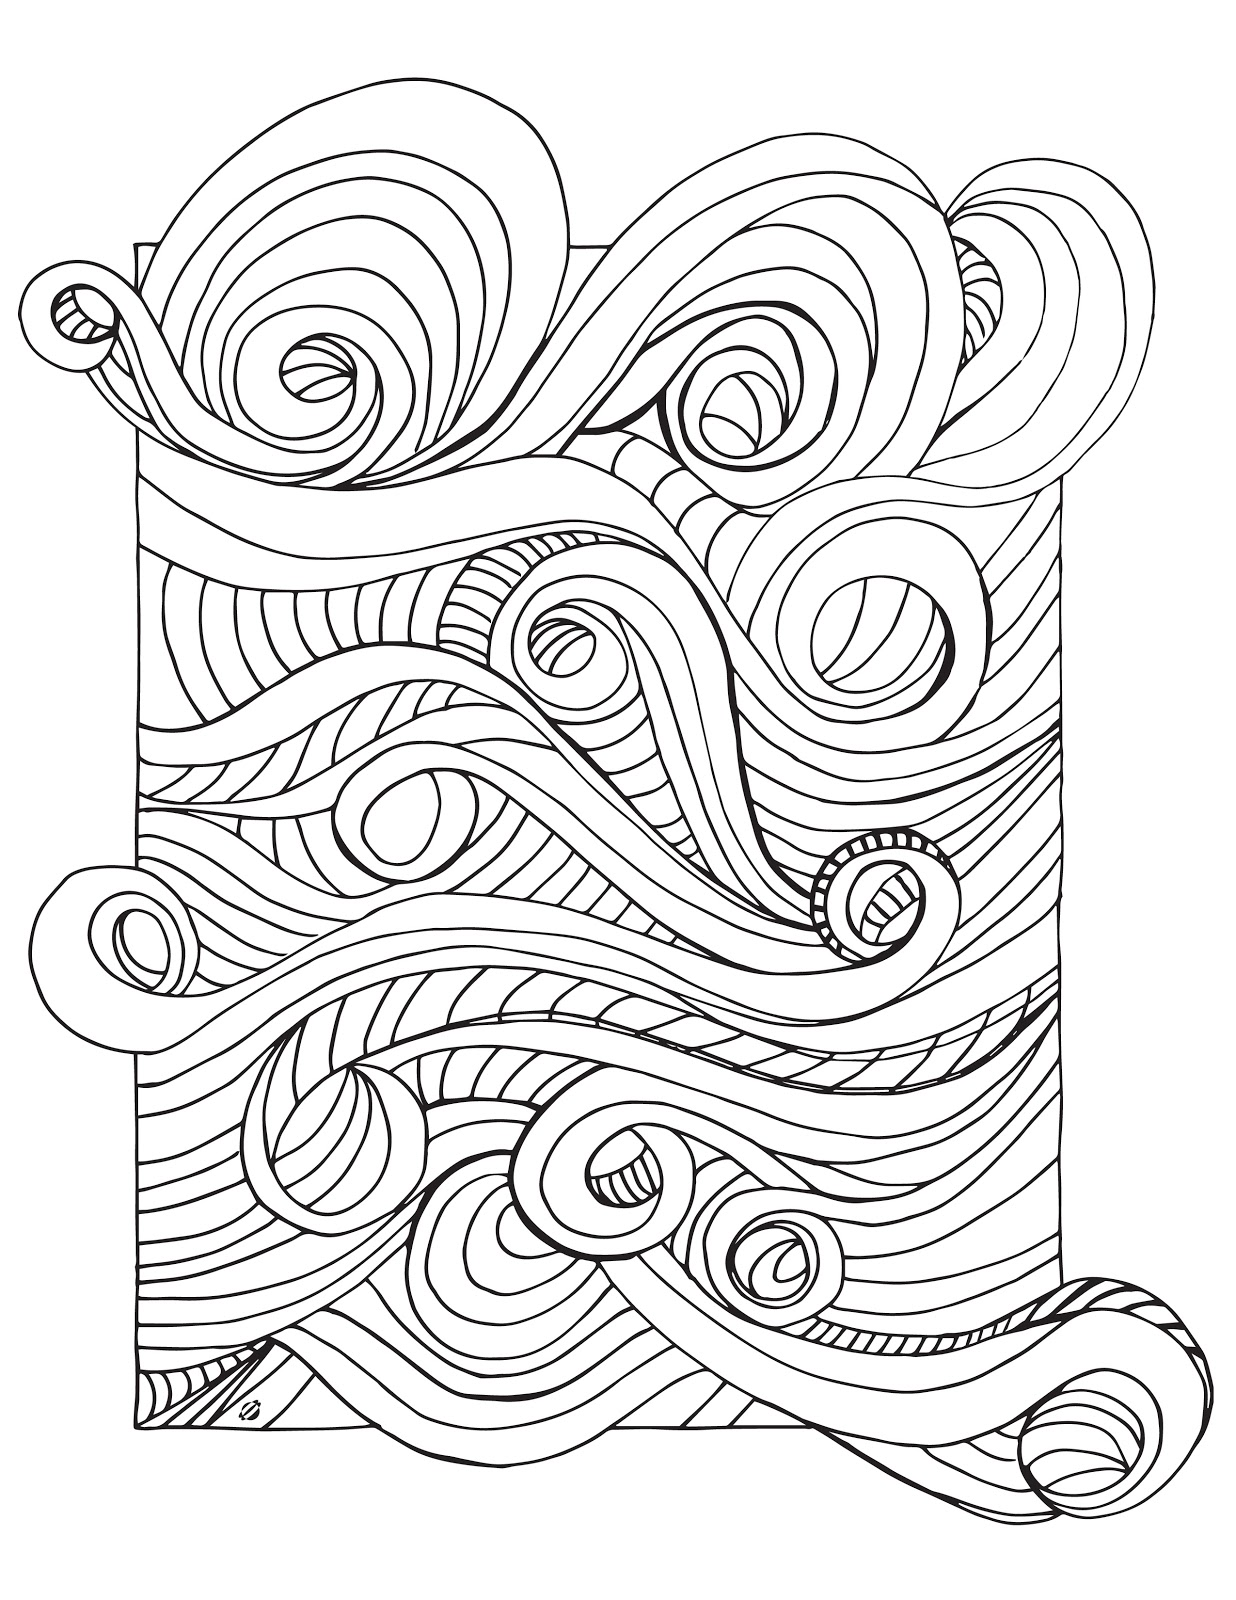 Ocean Wave Drawing At Getdrawings